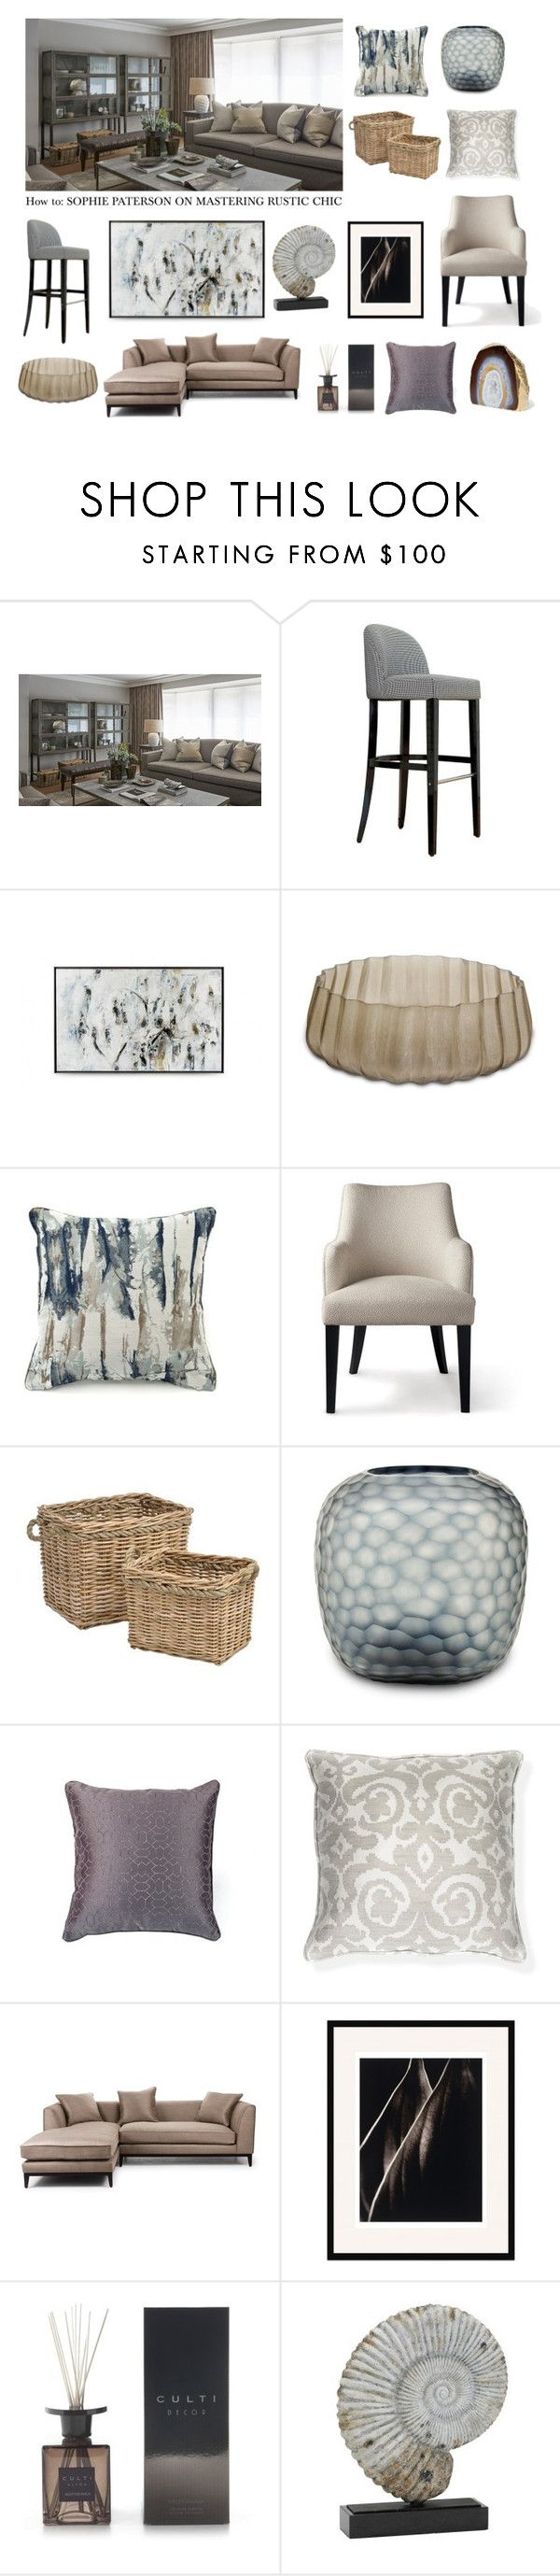 """How to: Sophie Paterson on Mastering Rustic Chic"" by luxdeco ❤ liked on Polyvore featuring interior, interiors, interior design, home, home decor, interior decorating and rustic"